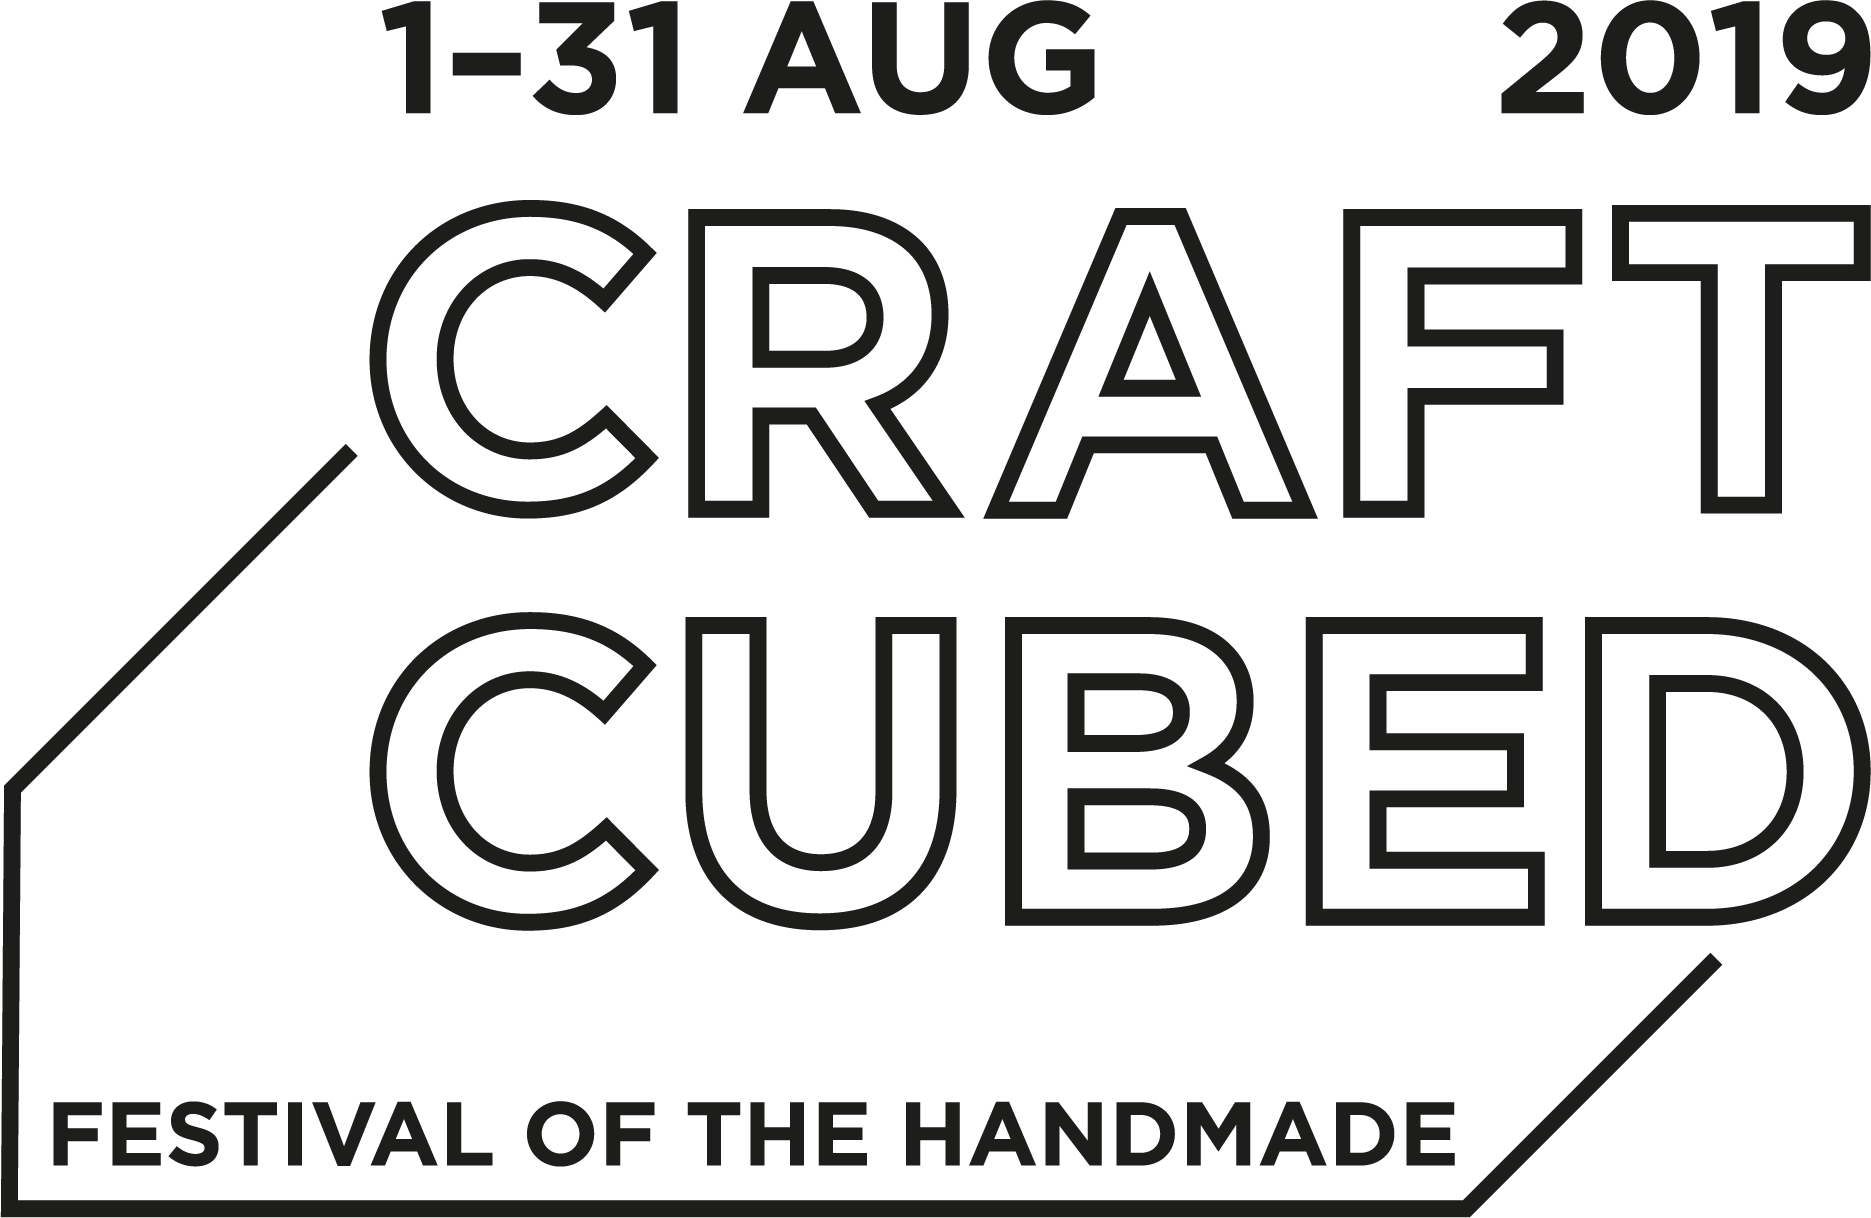 craftcubed_final_logo_black.png